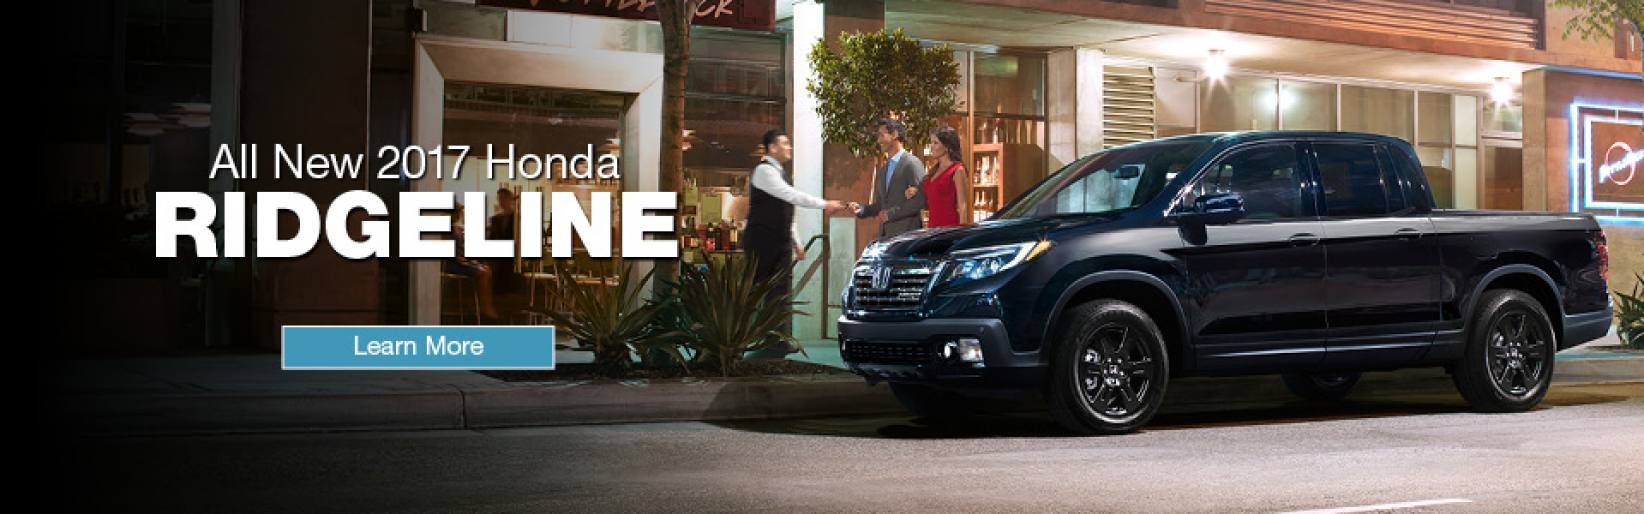 2018 honda ridgeline sales event in bay area oakland for Bay city motors san leandro ca